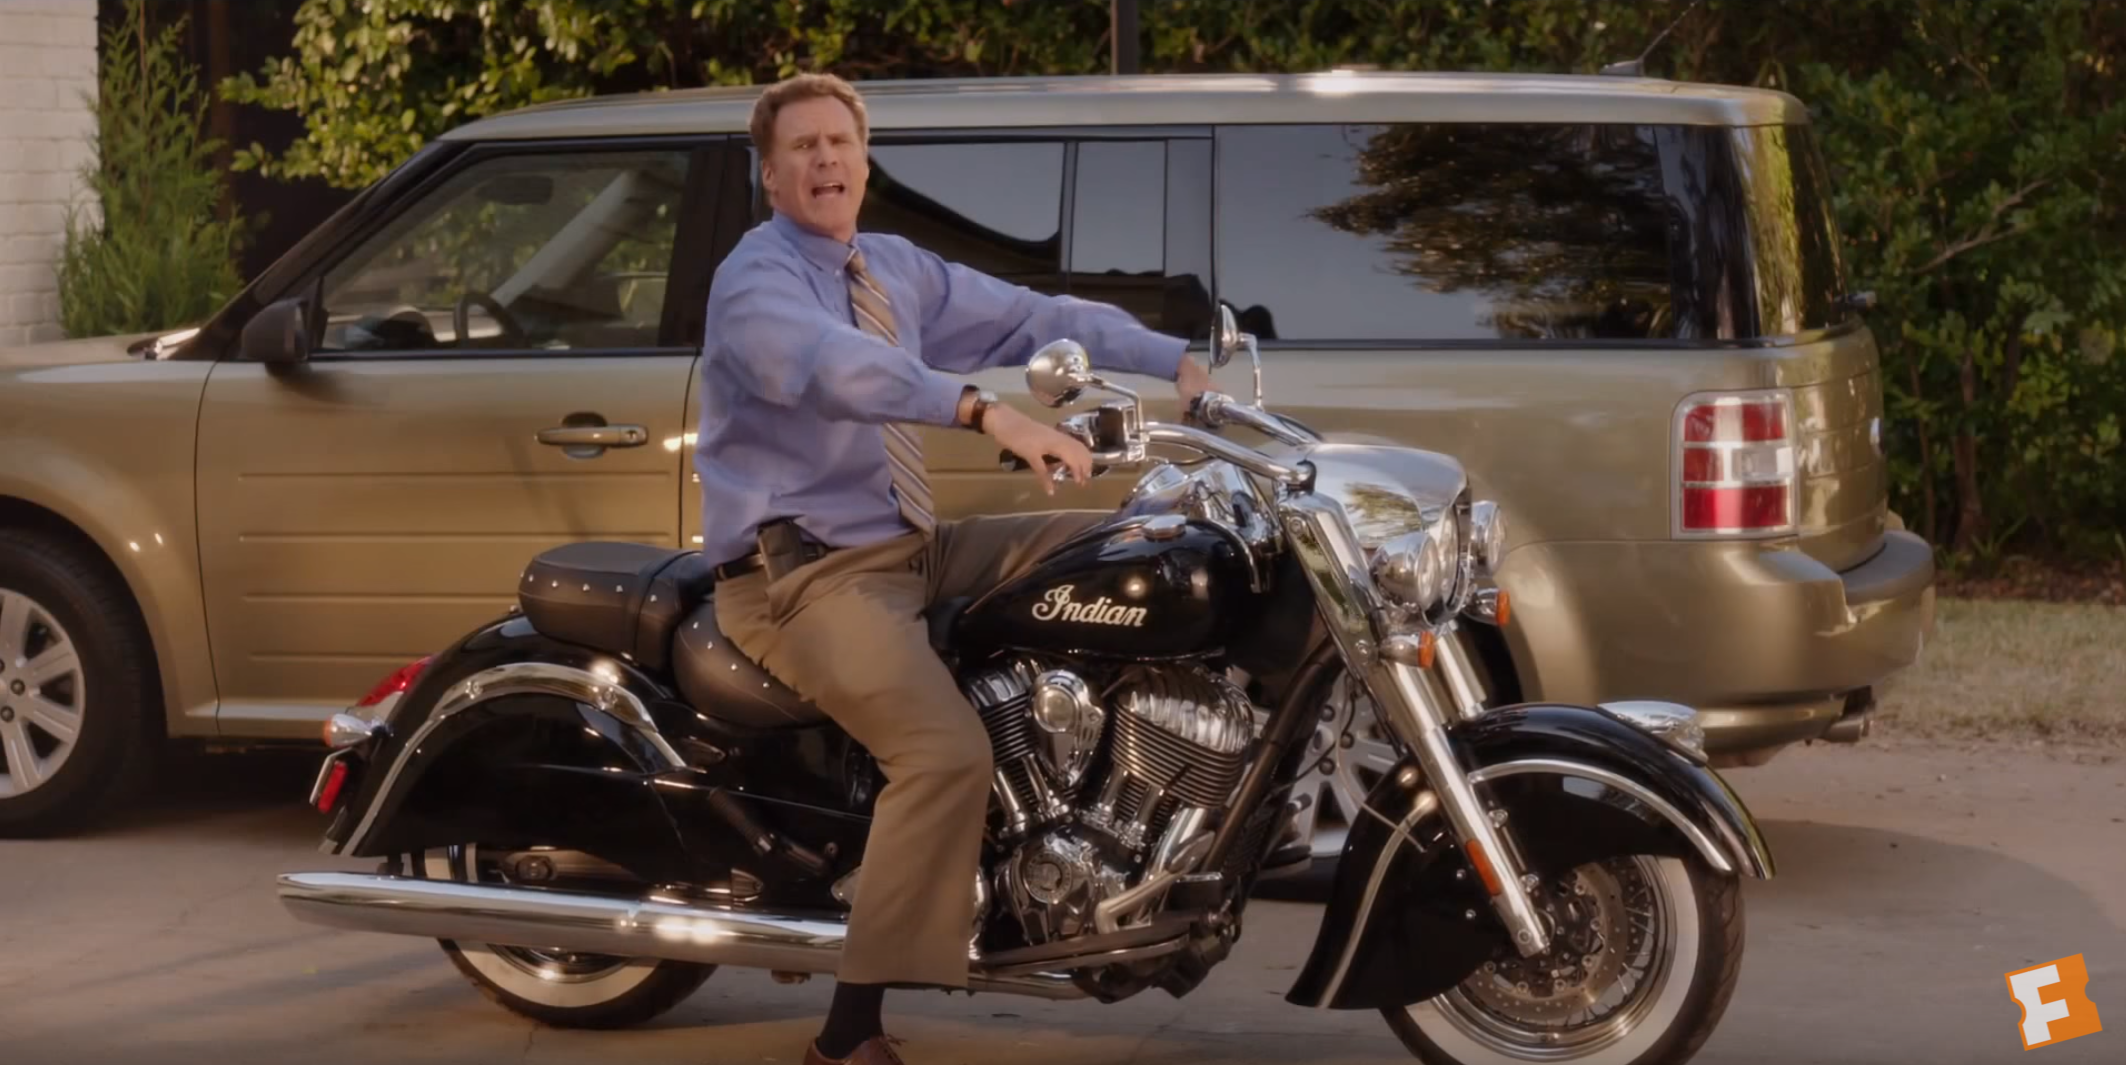 Watch The New Trailer For The Will Ferrell & Mark Wahlberg Movie 'Daddy's Home'